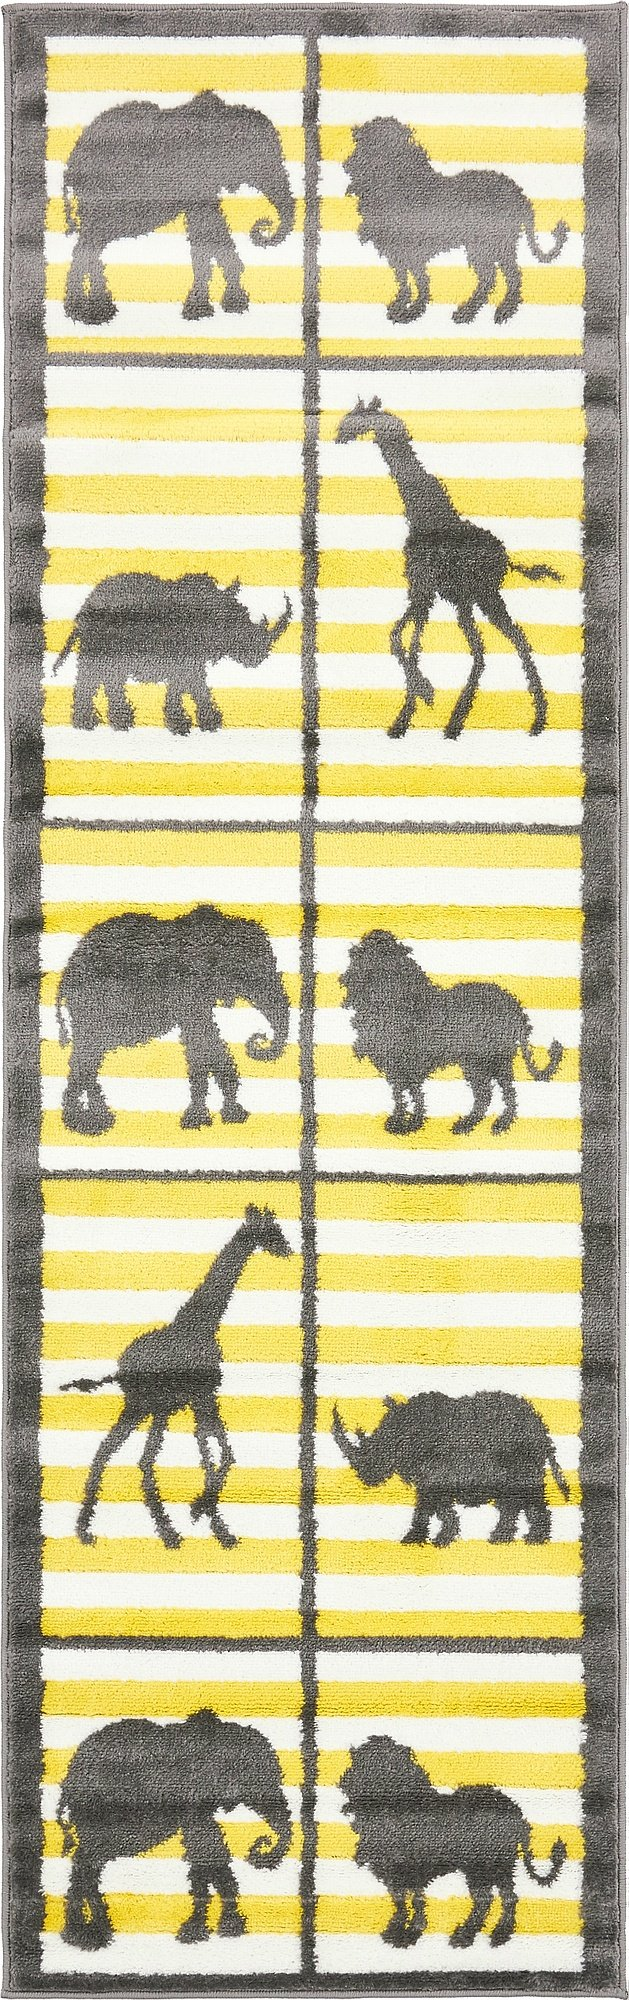 Unique Loom Metro Collection Modern Animals Bright Colors Kids Gray Runner Rug (2' x 7')